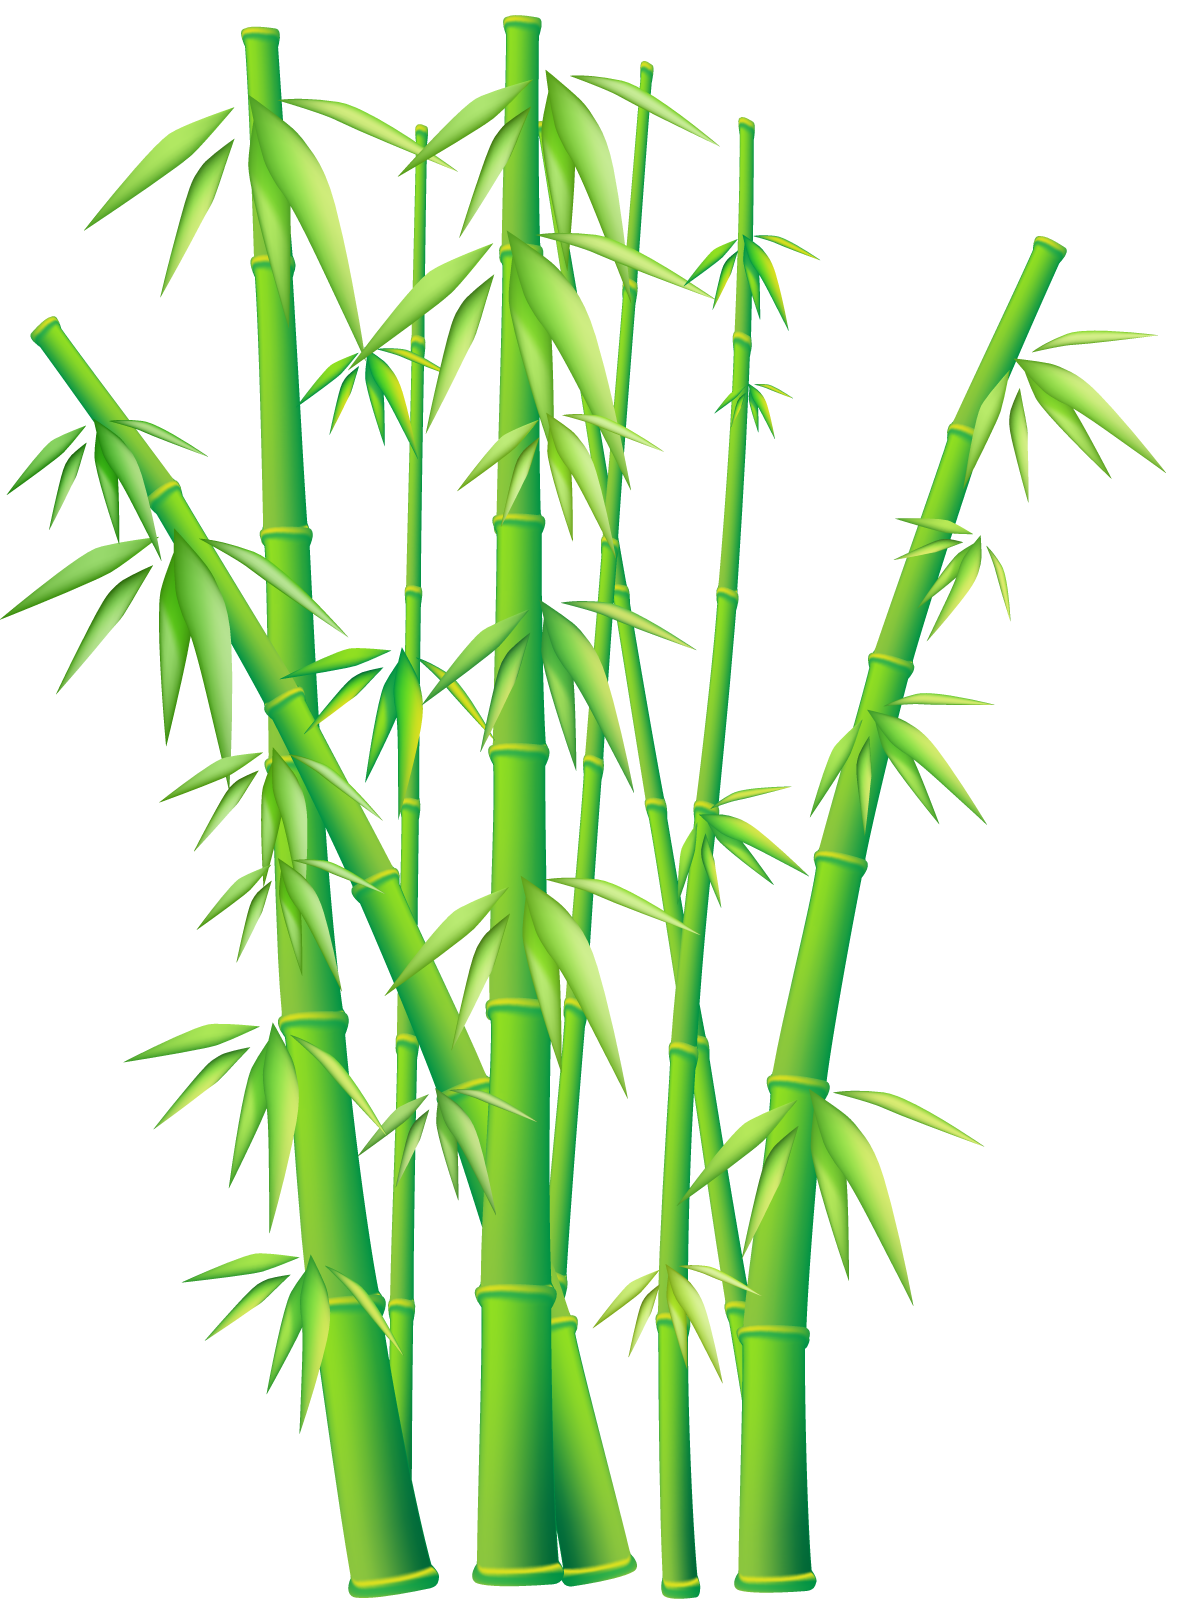 Bamboo Art Design : Bamboo border free download clipart best